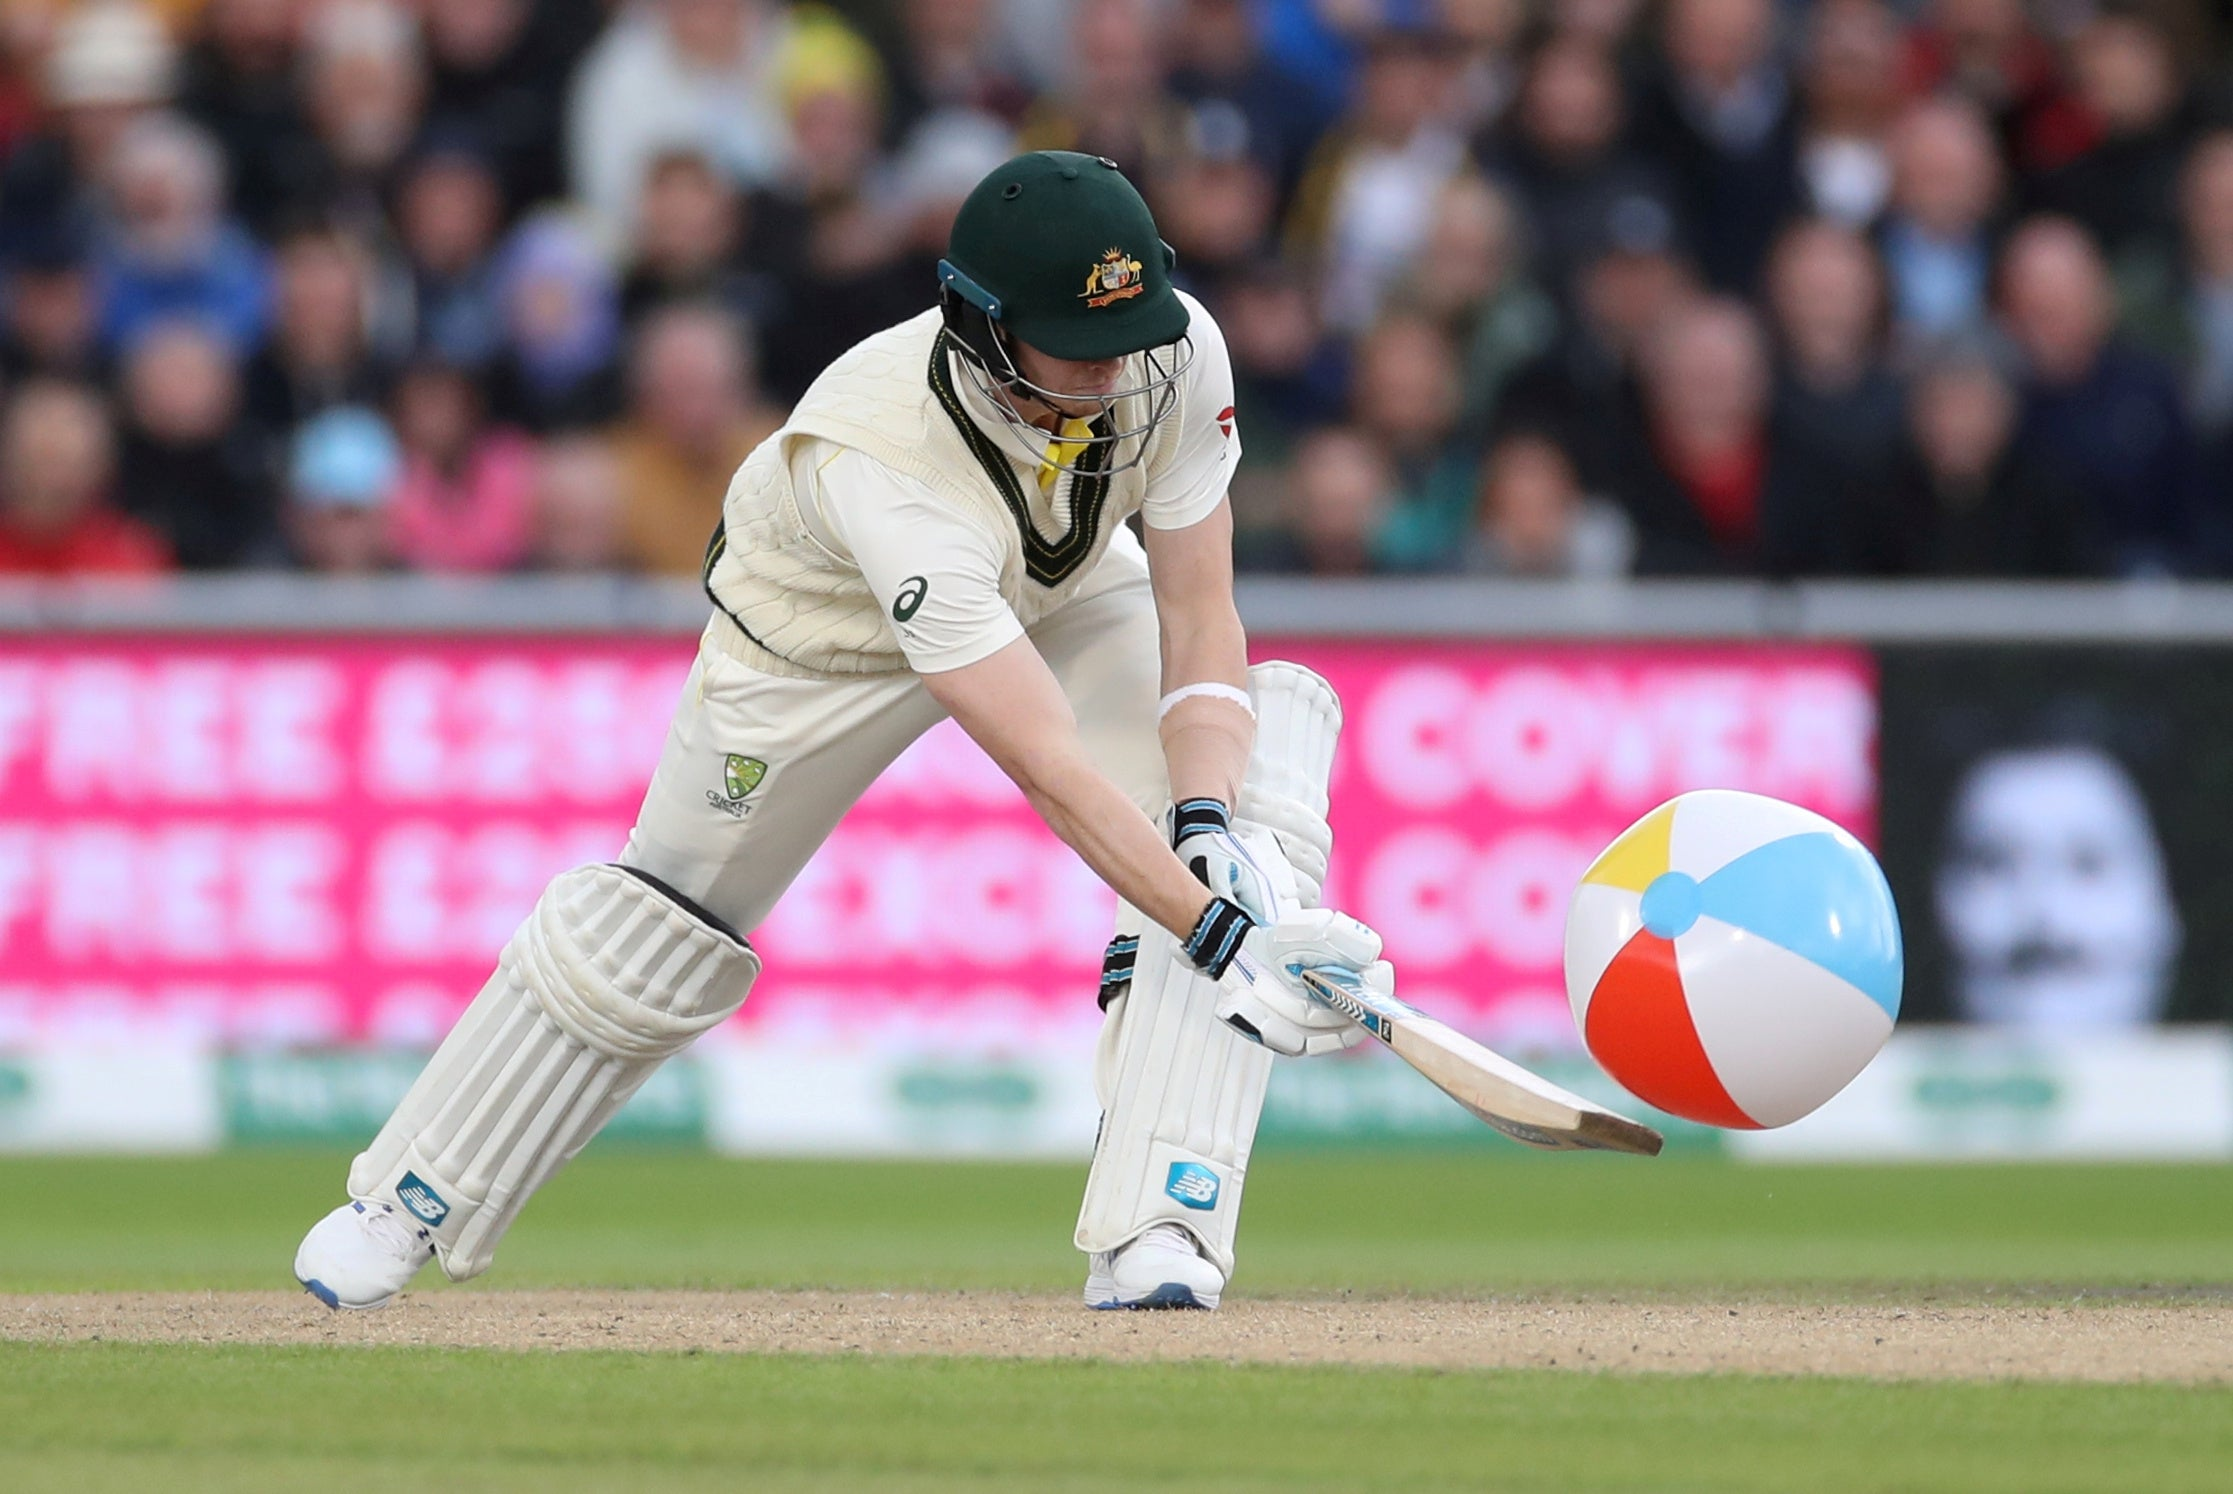 Ashes 2019: Bliss or beaten, England's euphoric summer of